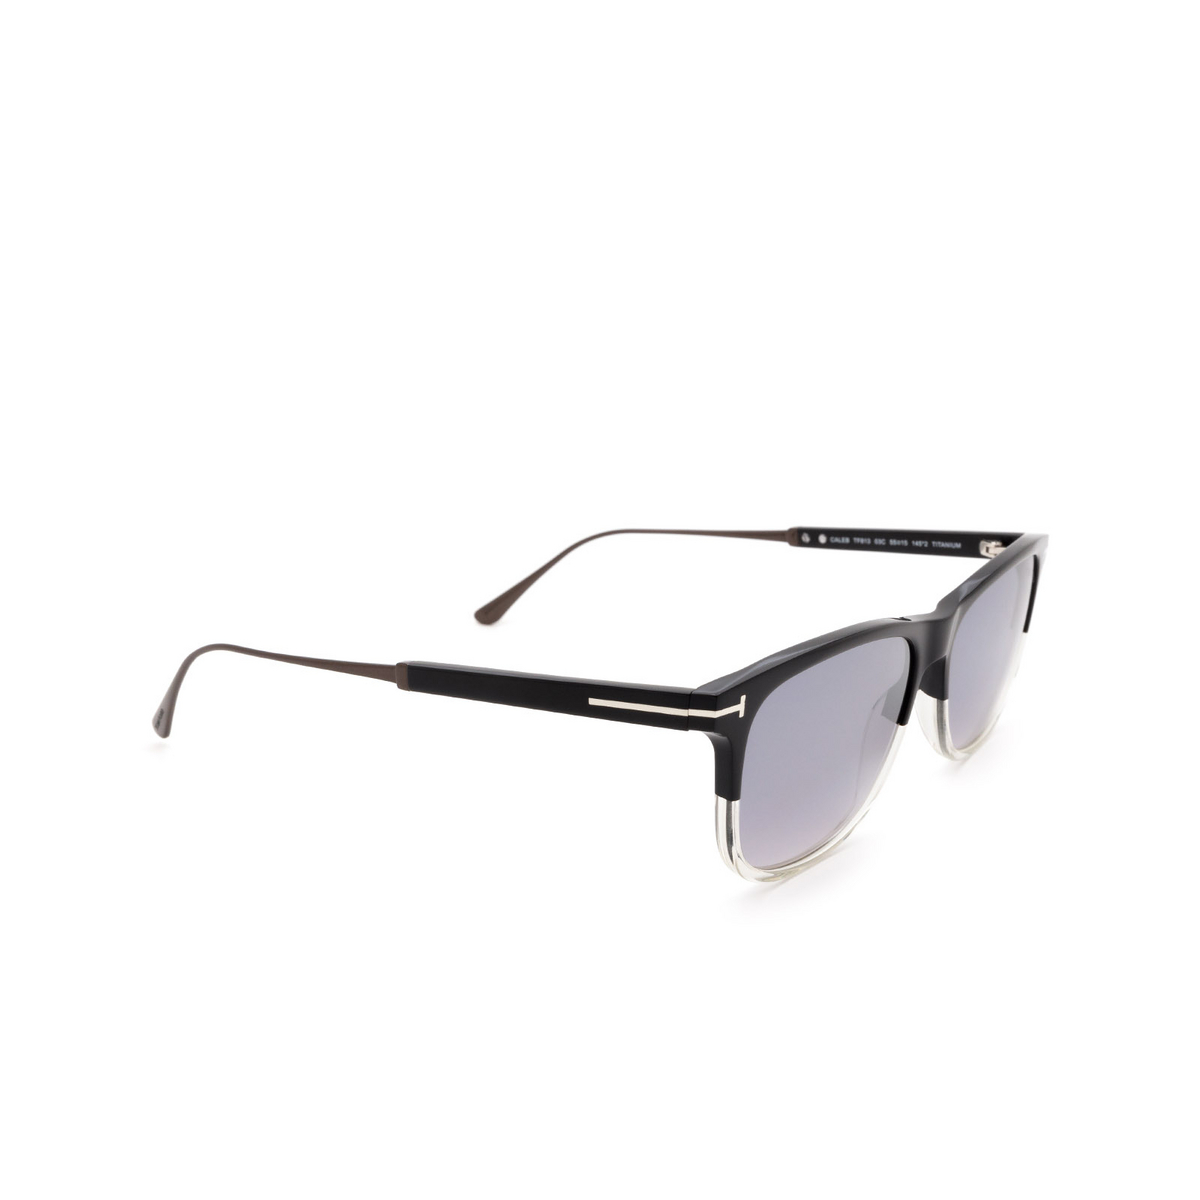 Tom Ford® Rectangle Sunglasses: Caleb FT0813 color Black & Crystal 03C - three-quarters view.